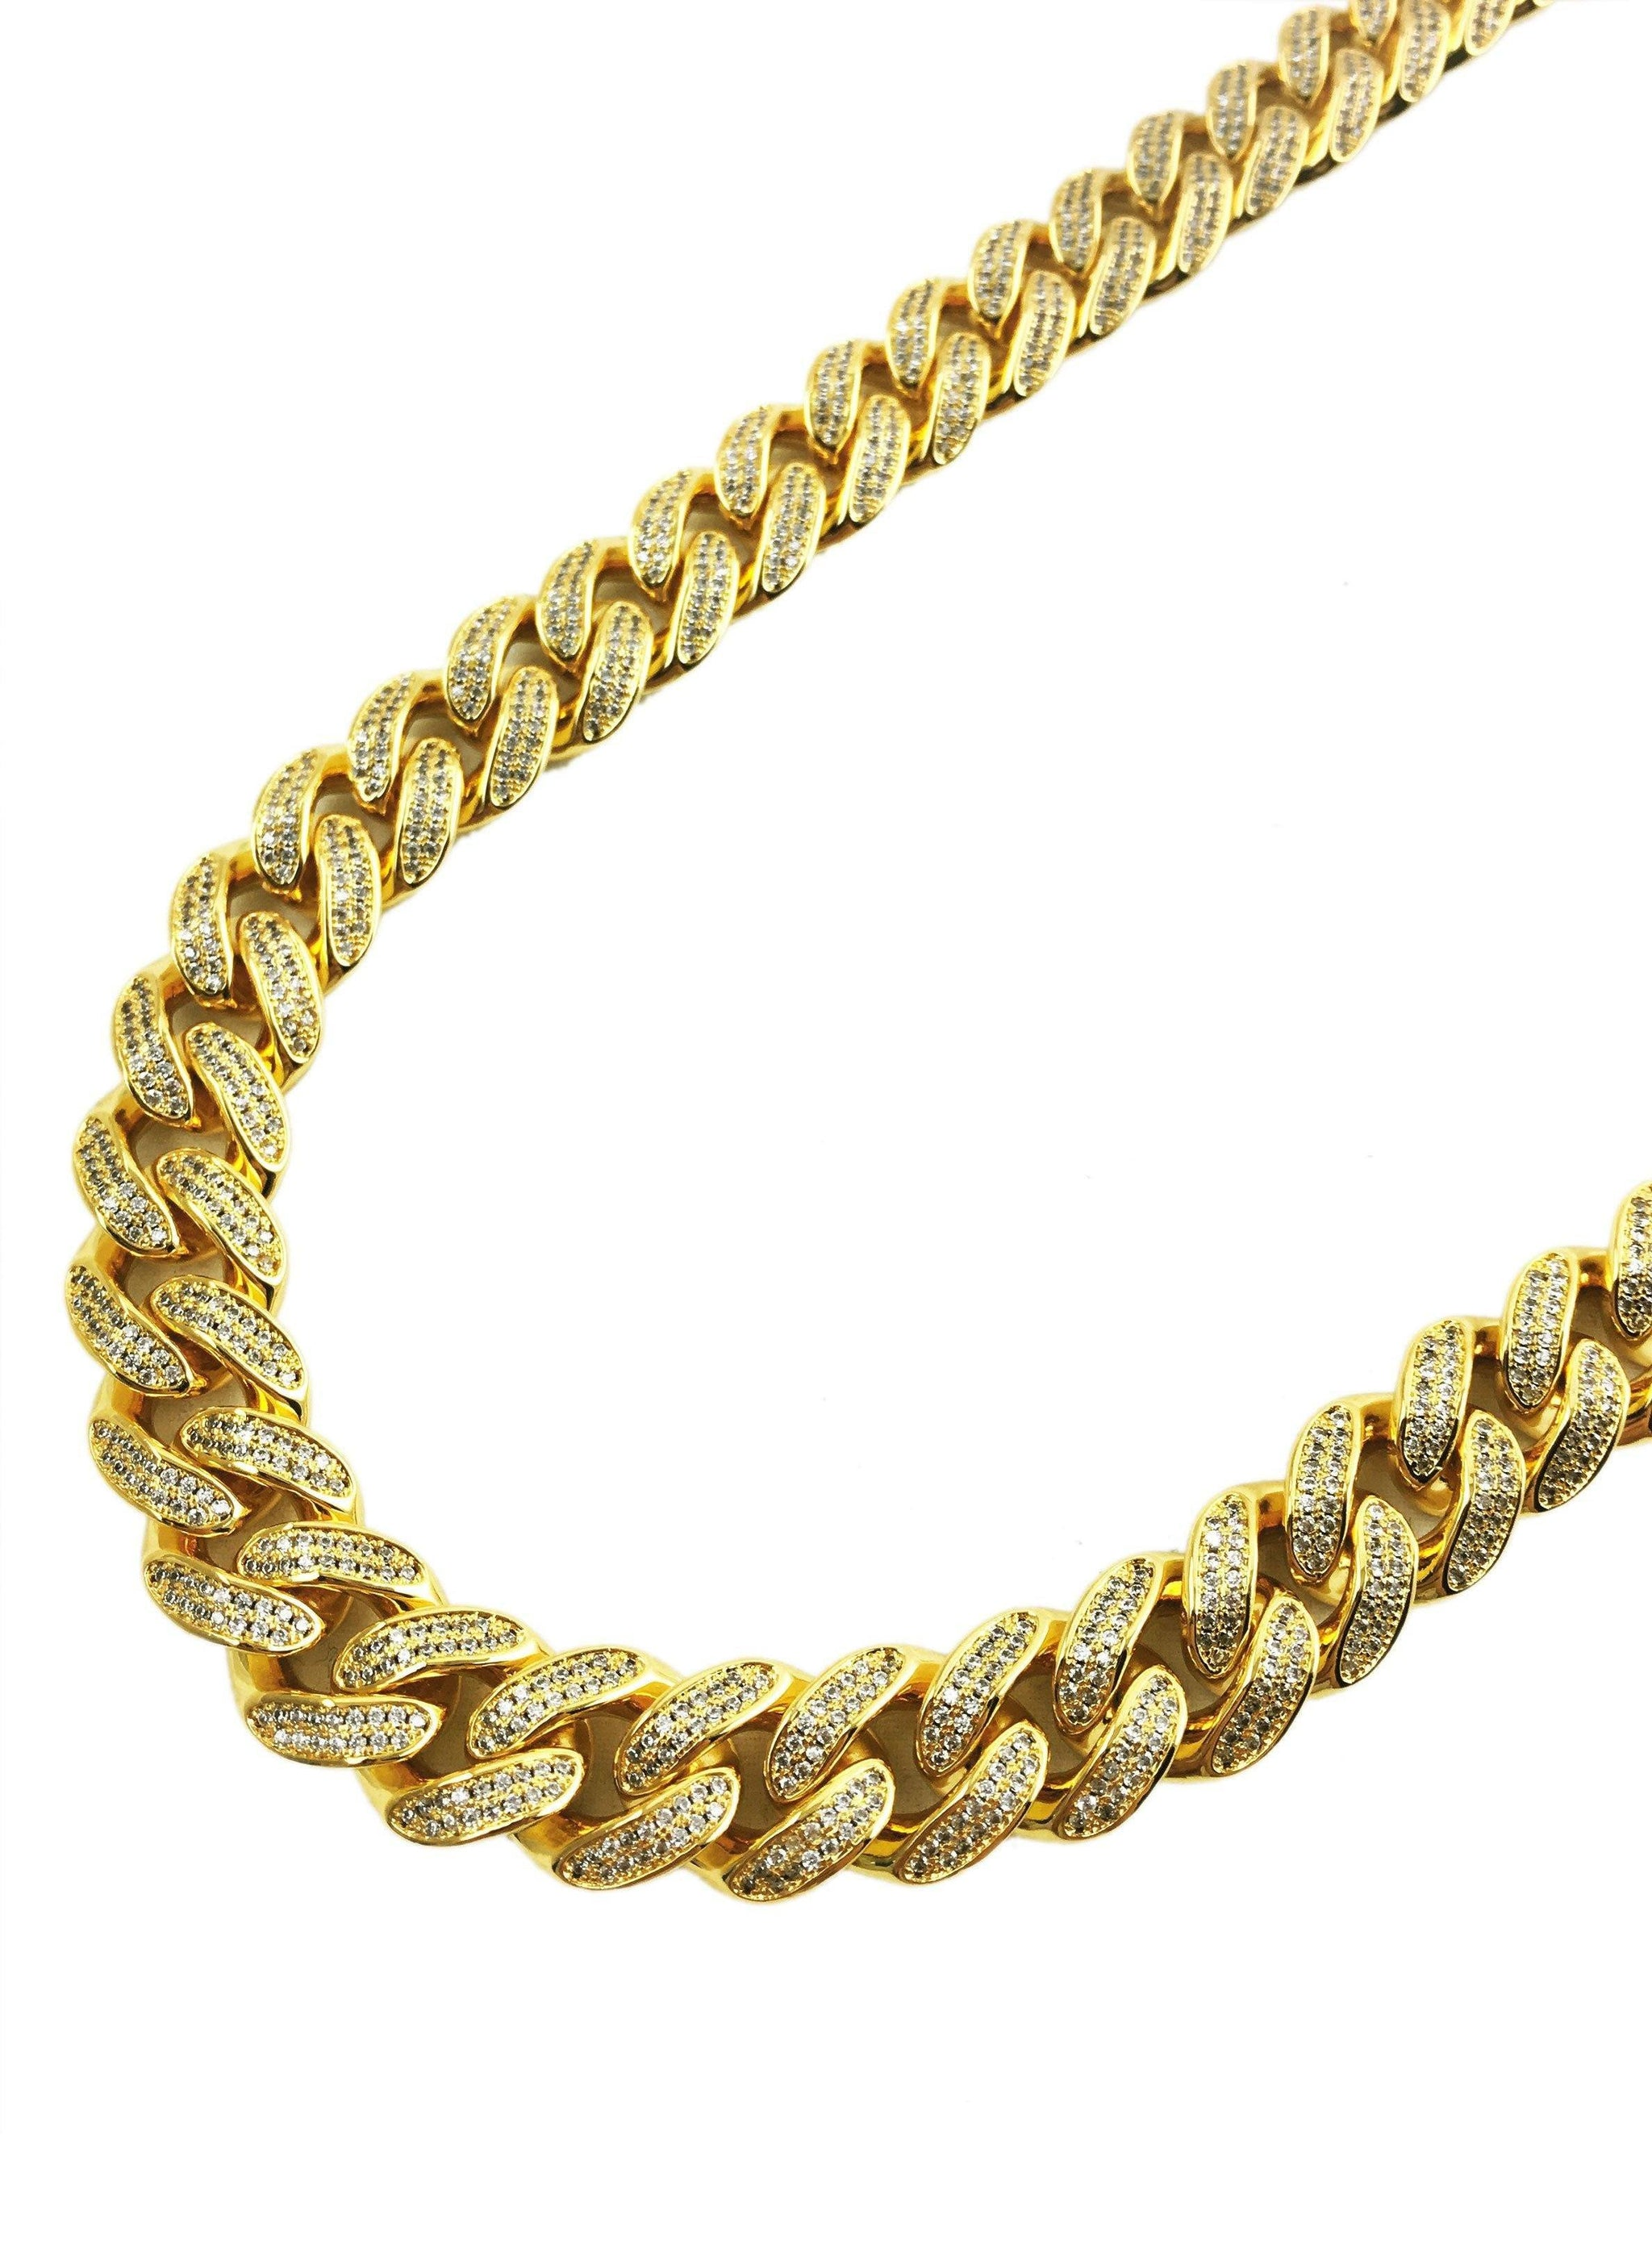 decorative chain necklace french chains victorian gold